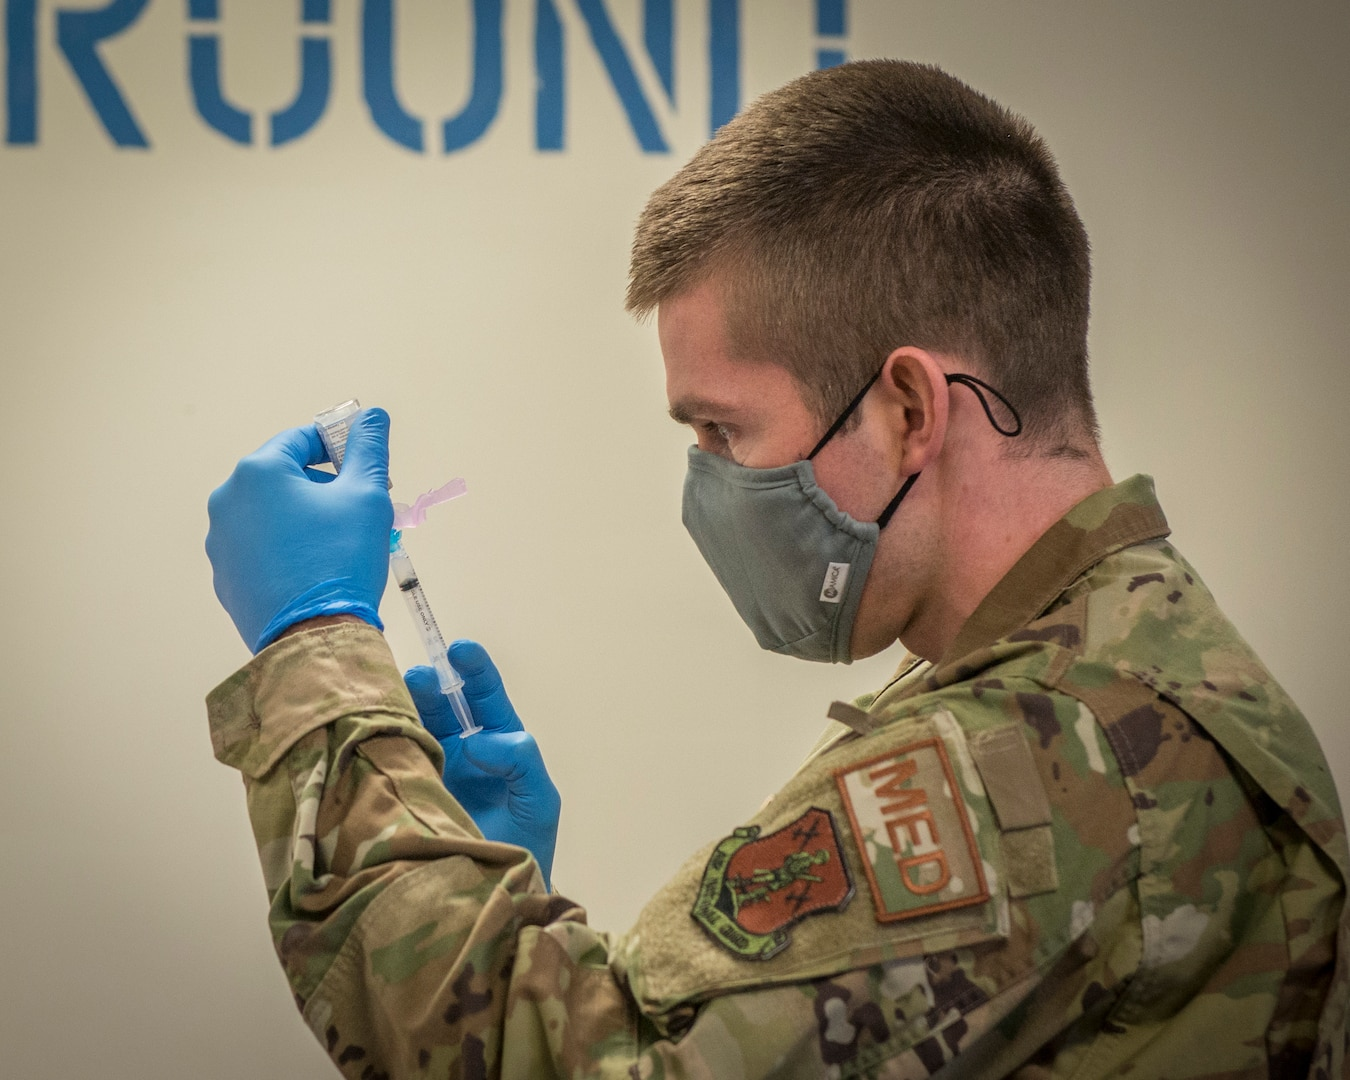 U.S. Air Force Capt. Greg Flis, 103rd Medical Group nurse practitioner, draws Moderna COVID-19 vaccine from a vial into a syringe at Bradley Air National Guard Base in East Granby, Connecticut, Dec. 30, 2020. The Connecticut National Guard began administering the vaccine in accordance with the Department of Defense COVID-19 vaccine distribution plan, with doses voluntarily administered to Soldiers and Airmen on the front lines of the COVID-19 pandemic response.